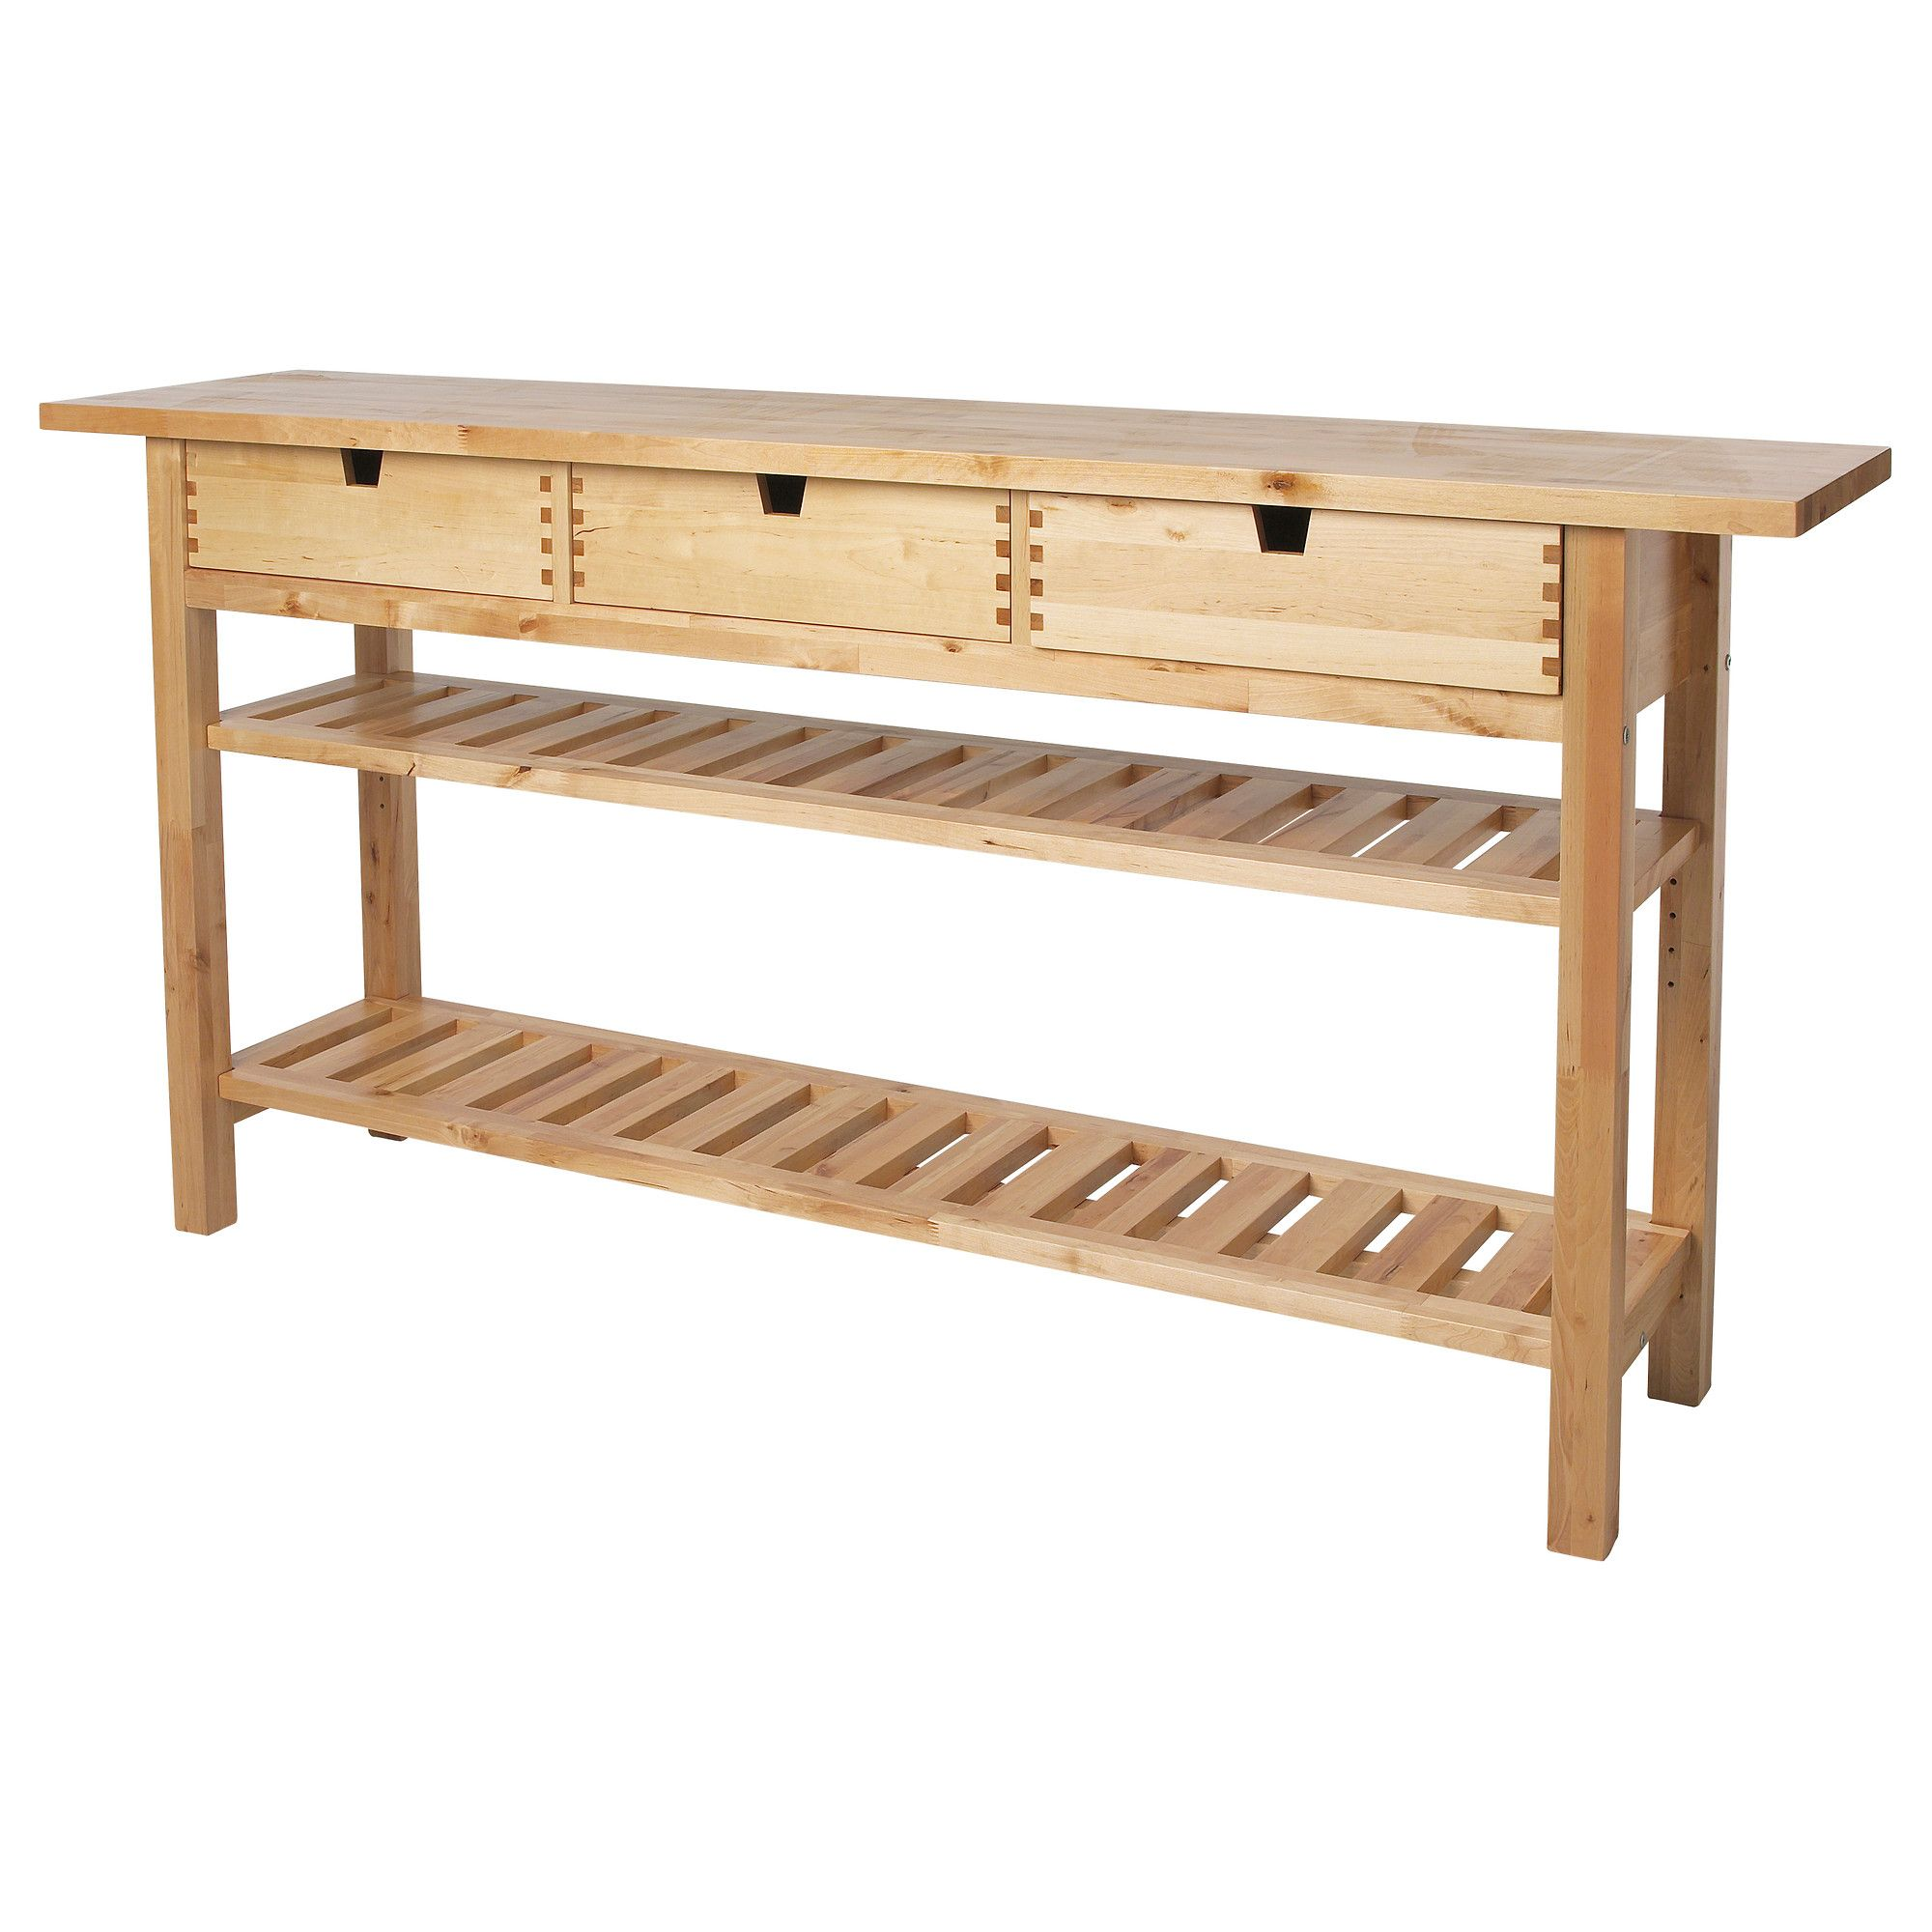 Norden console ikea home pinterest table ikea et table d 39 appoint - Console cuisine ikea ...